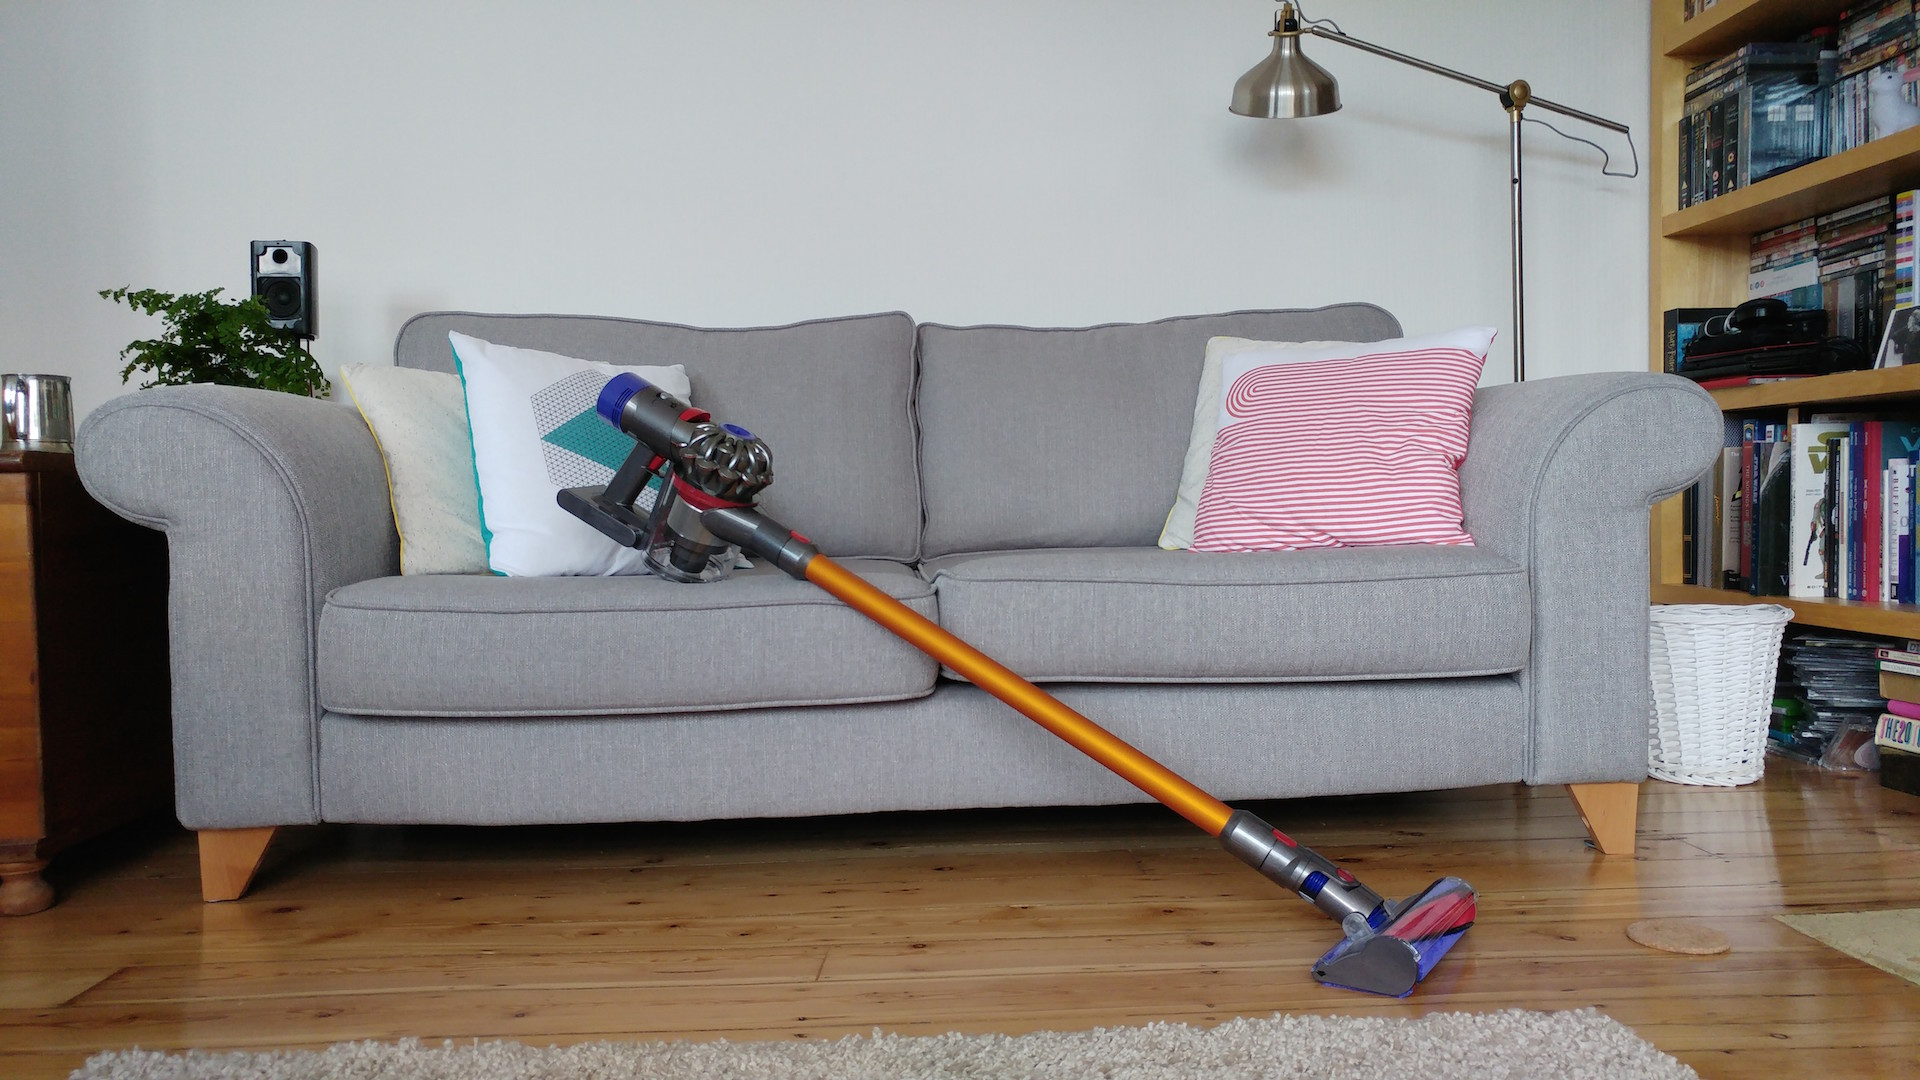 Best cordless vacuum cleaner 2018: the top wire-free vacuums you can buy